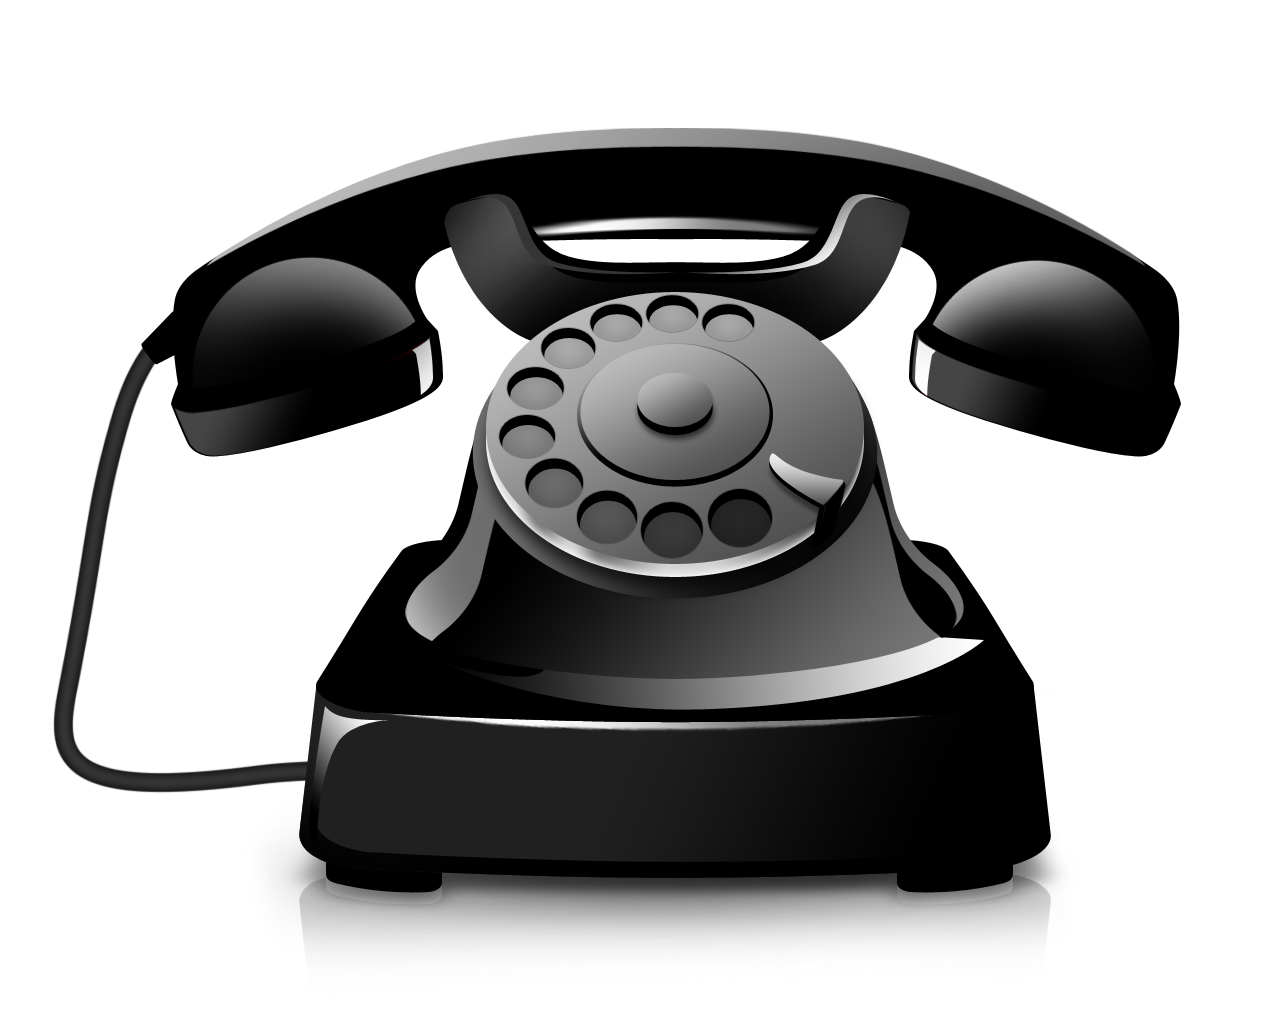 Png transparent images all. Clipart telephone analog phone